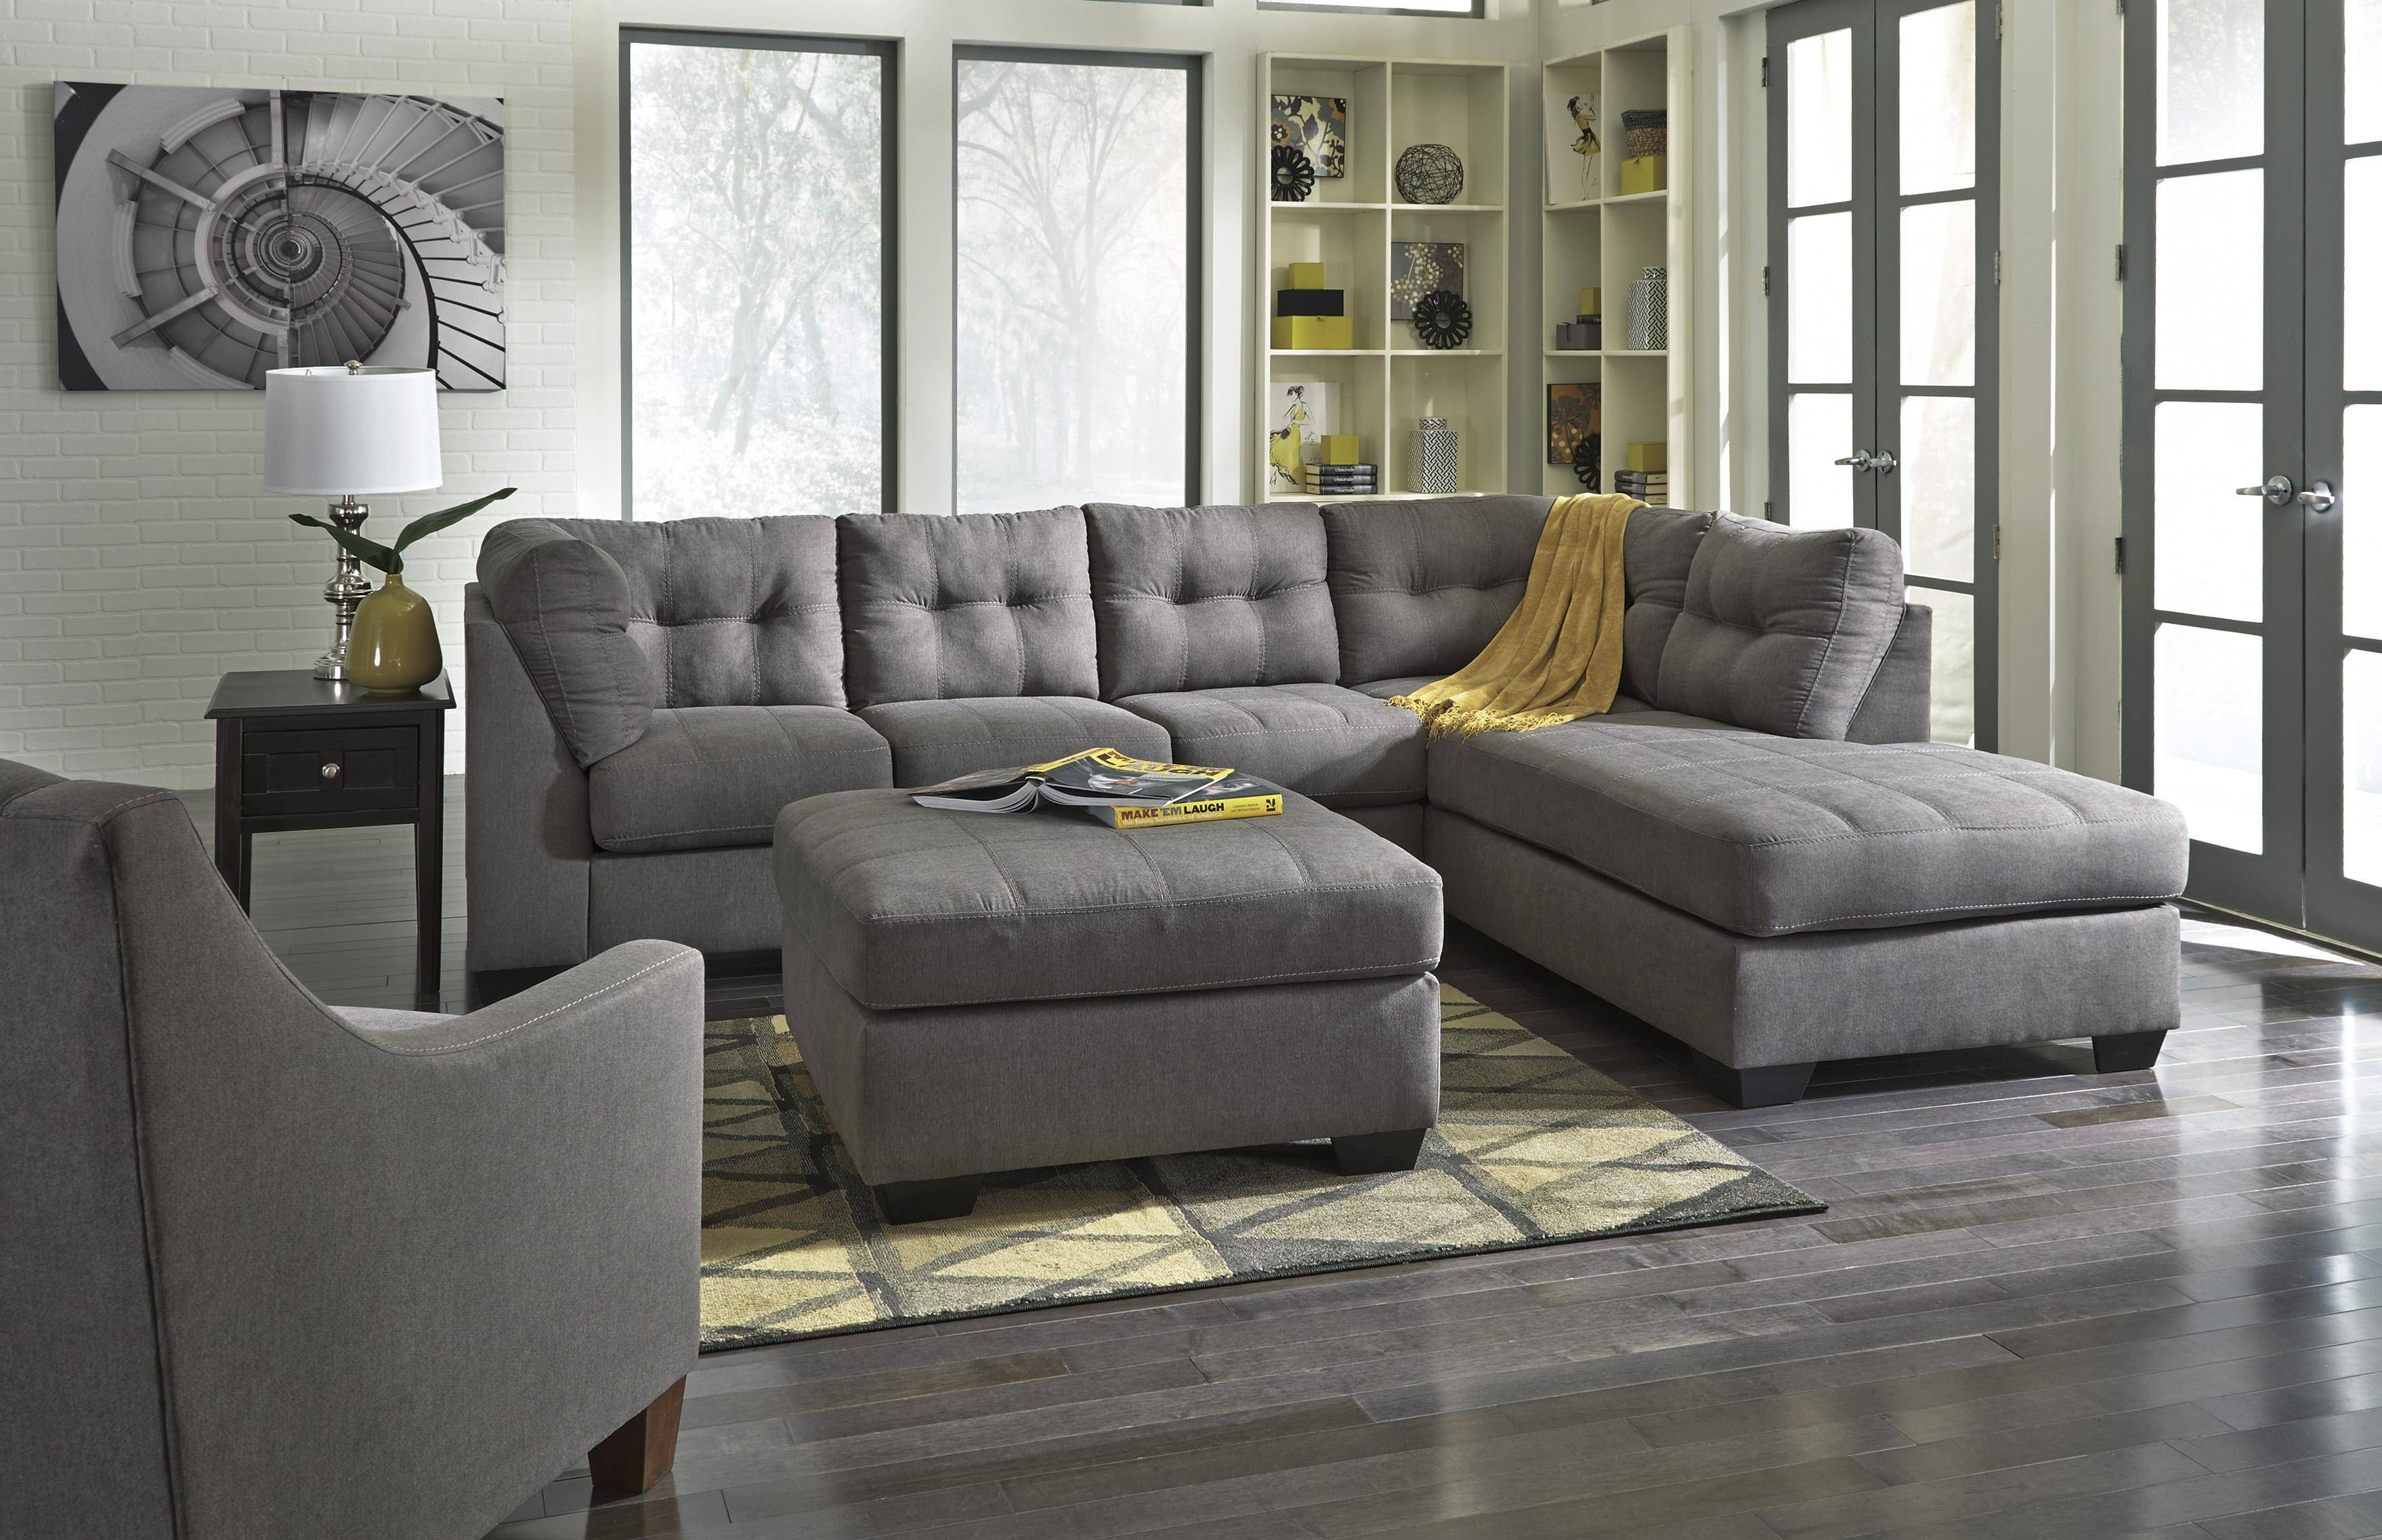 Benchcraft Maier – Charcoal 2 Piece Sectional W/ Sleeper Sofa Intended For Sectional Sofa With 2 Chaises (View 9 of 30)